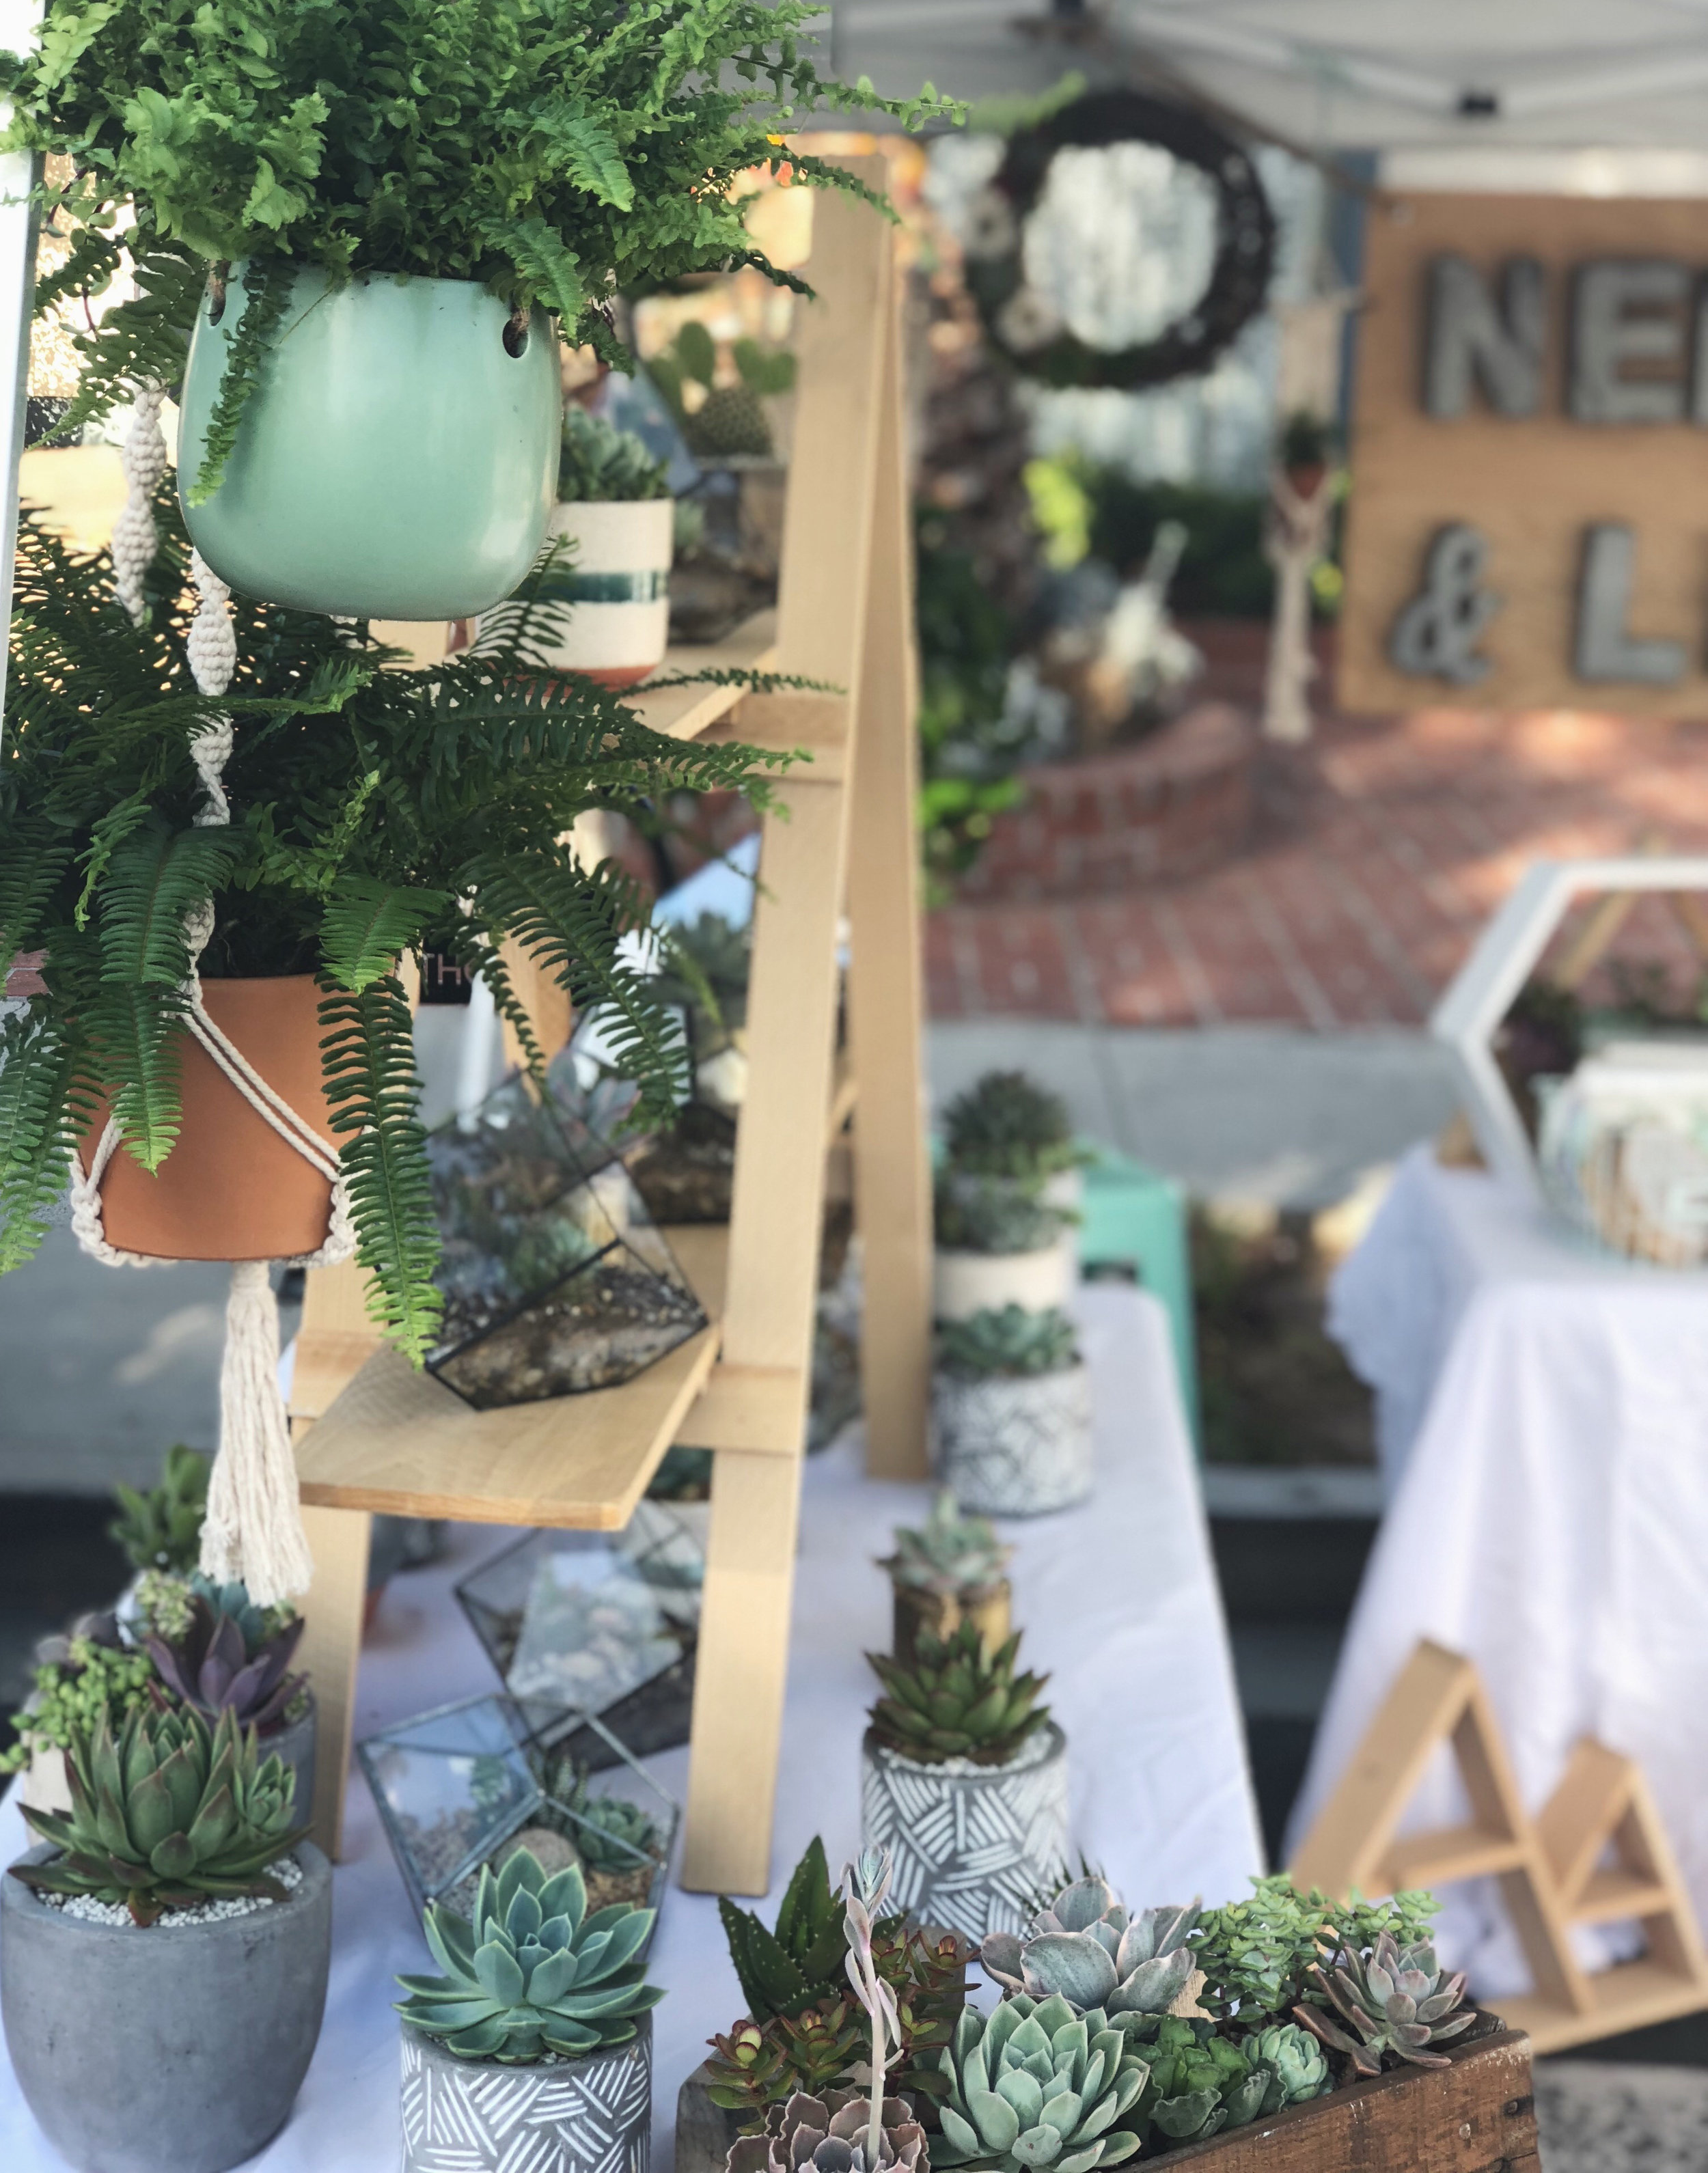 Needles + Leaves succulent booth at the Carlsbad Street Faire Spring 2018